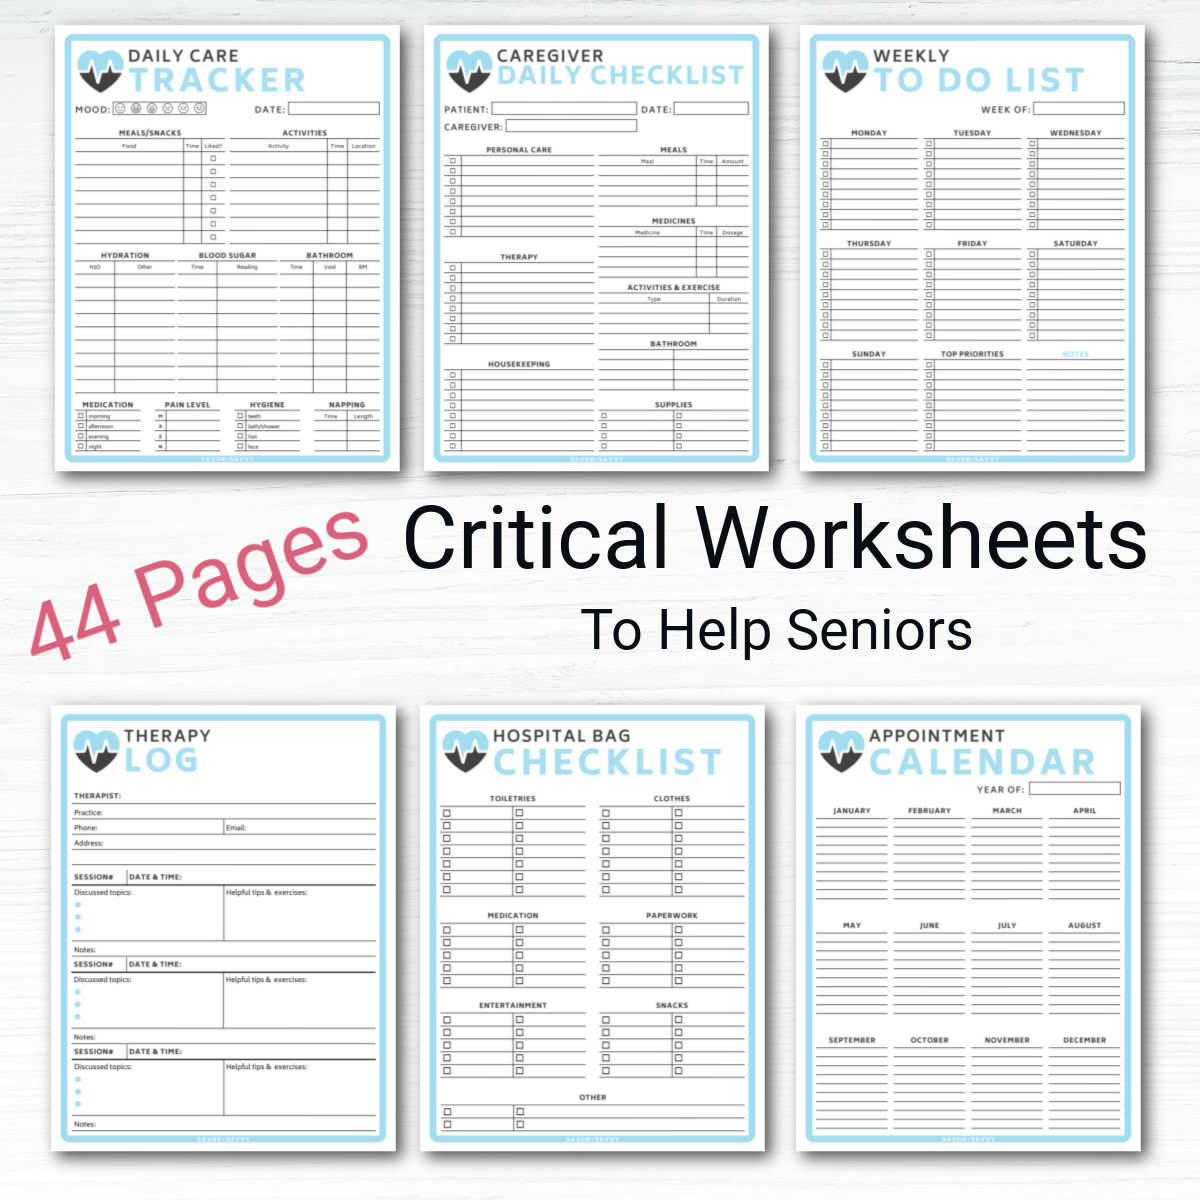 six pages on a white background and a note that these are critical worksheets to help seniors.